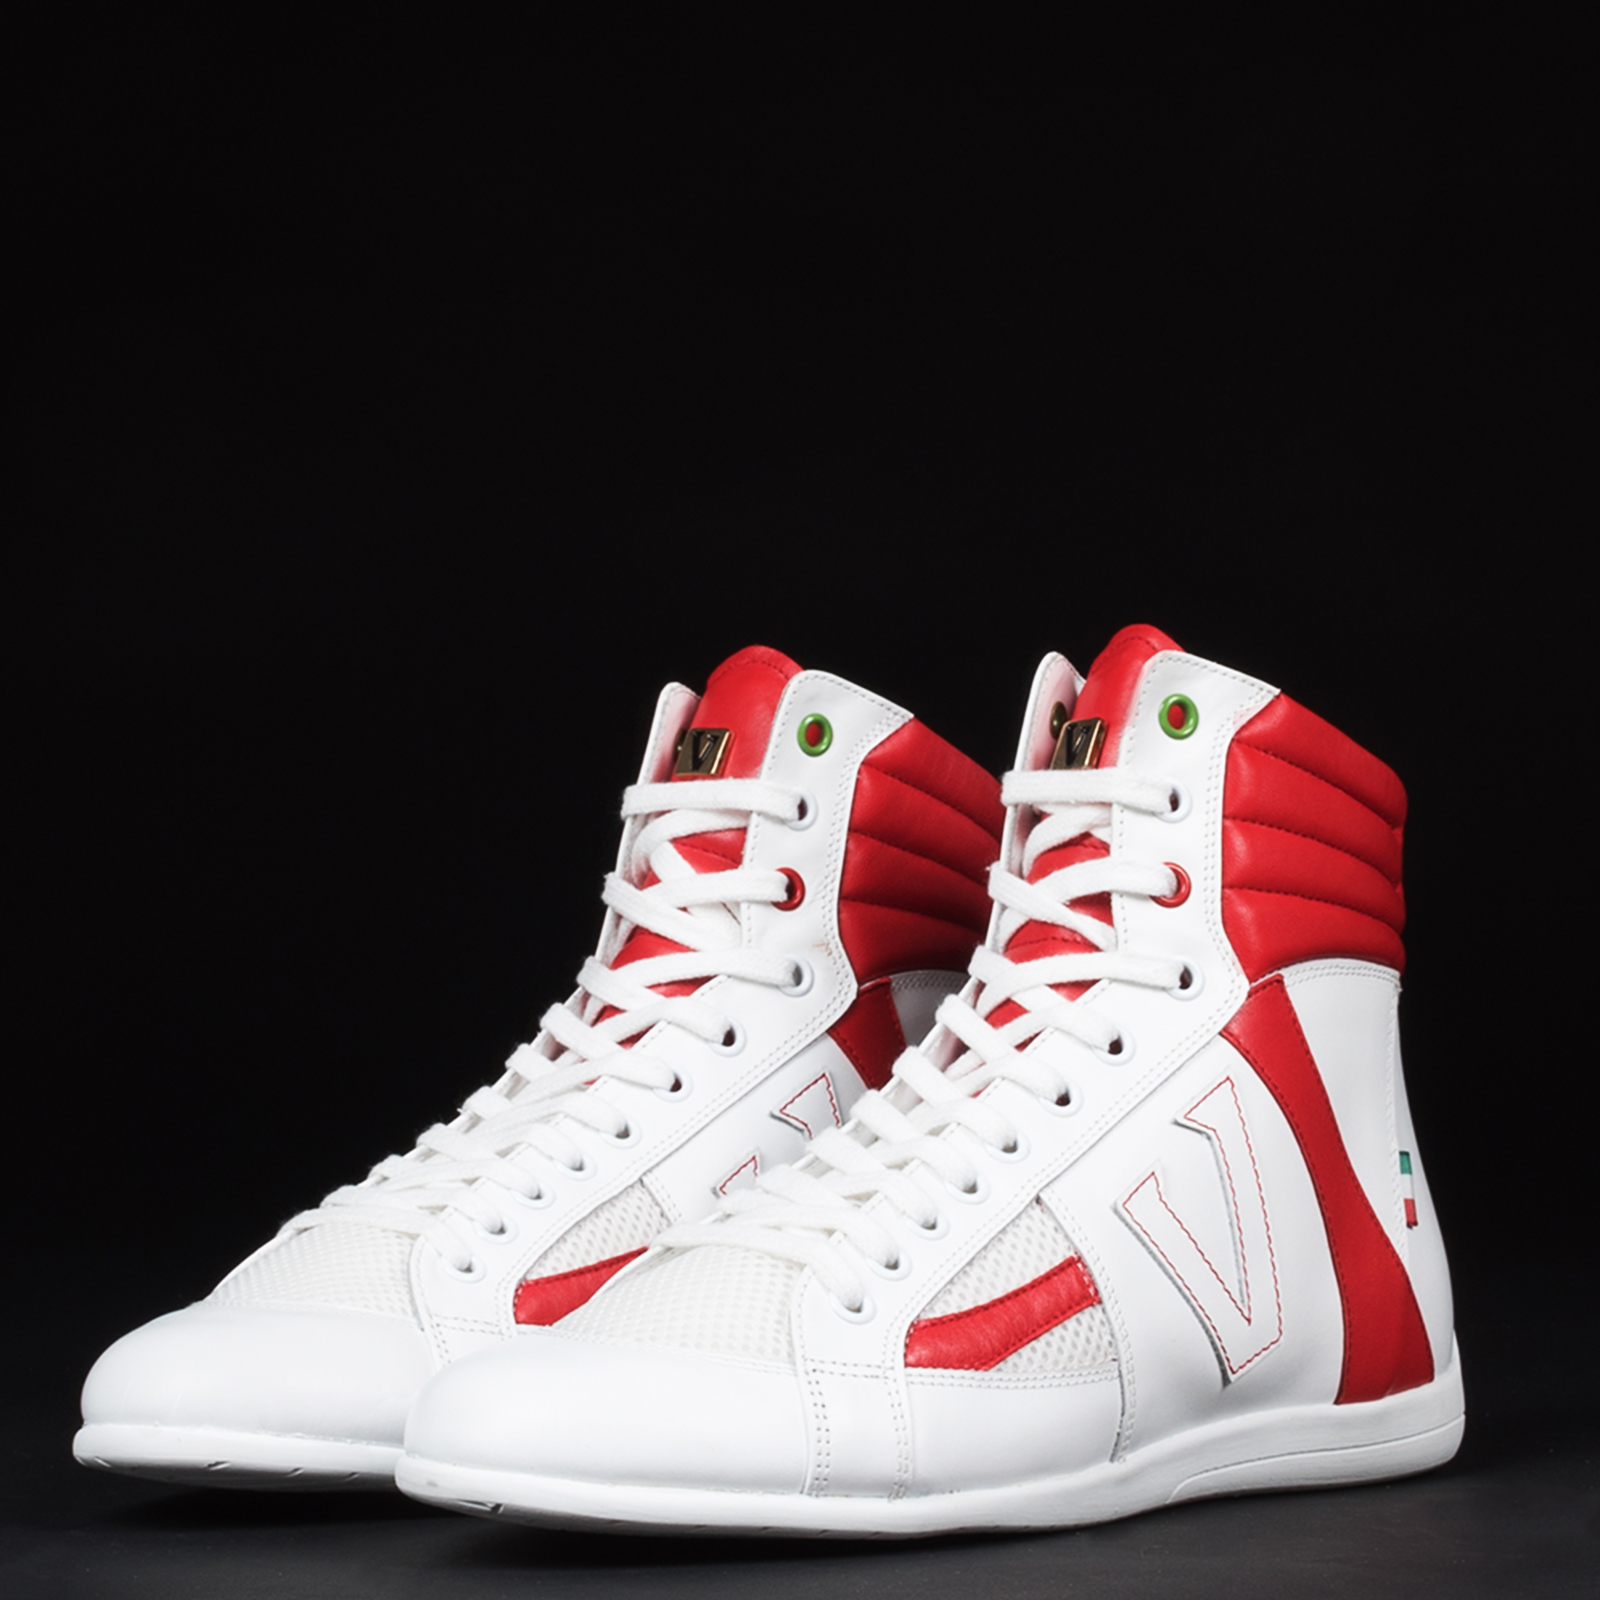 Low top designer boxing shoes for women